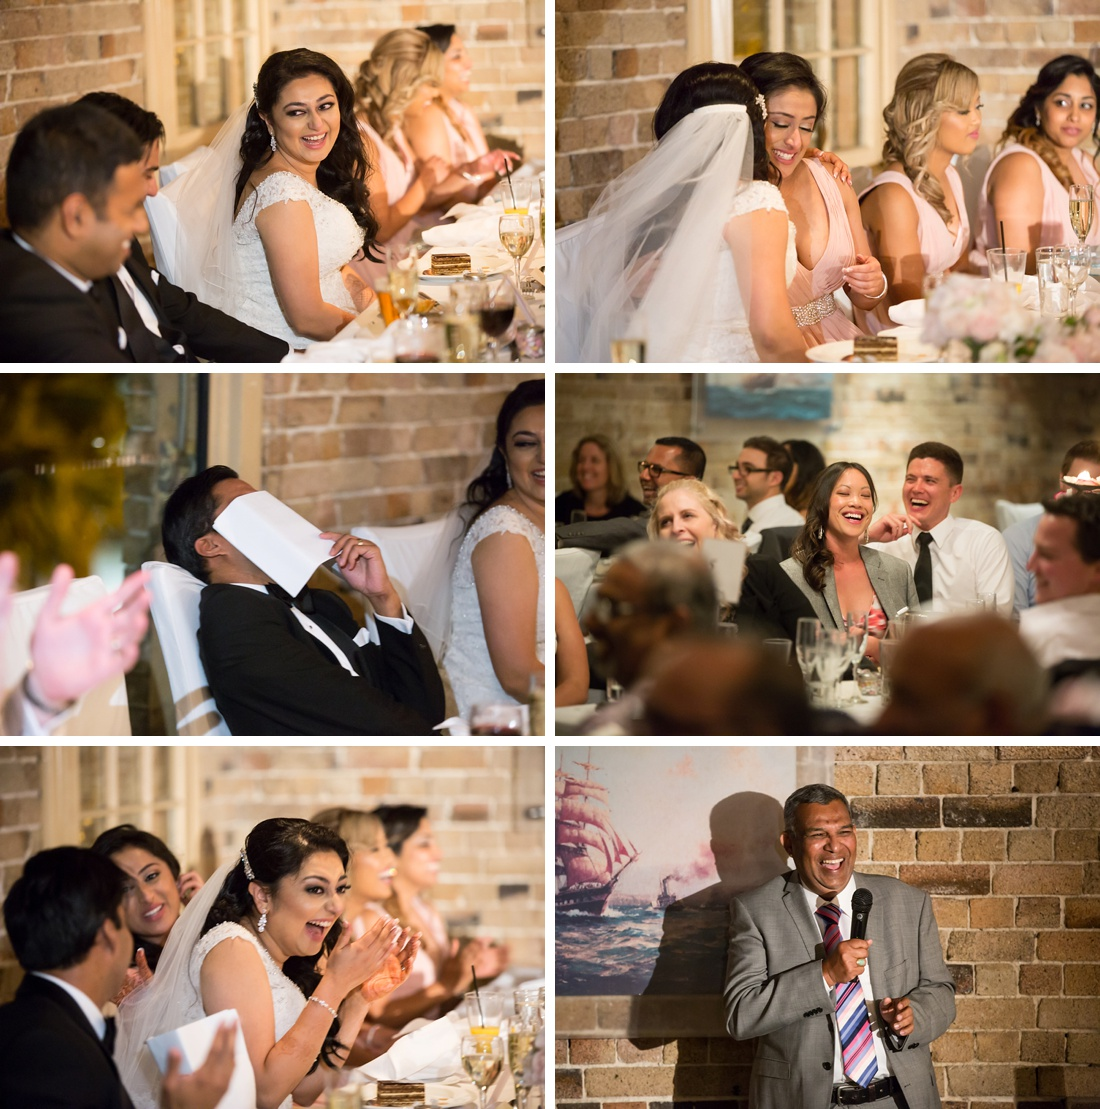 Sydney-Wedding-Photographer-St-Brigids-Church-Waterfront_0095.jpg